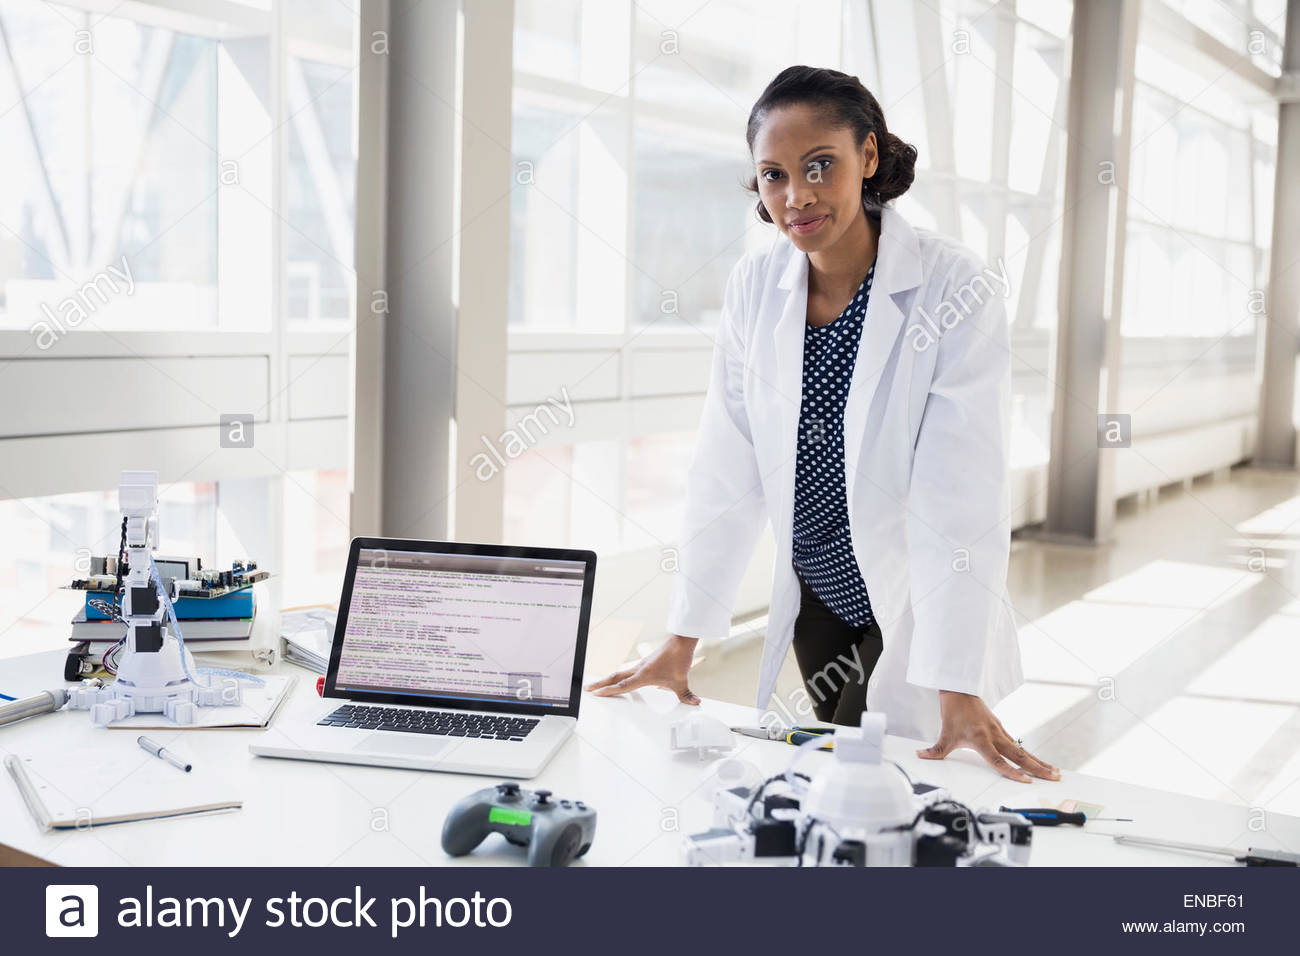 Portrait of confident engineer at desk with robots Stock Photo